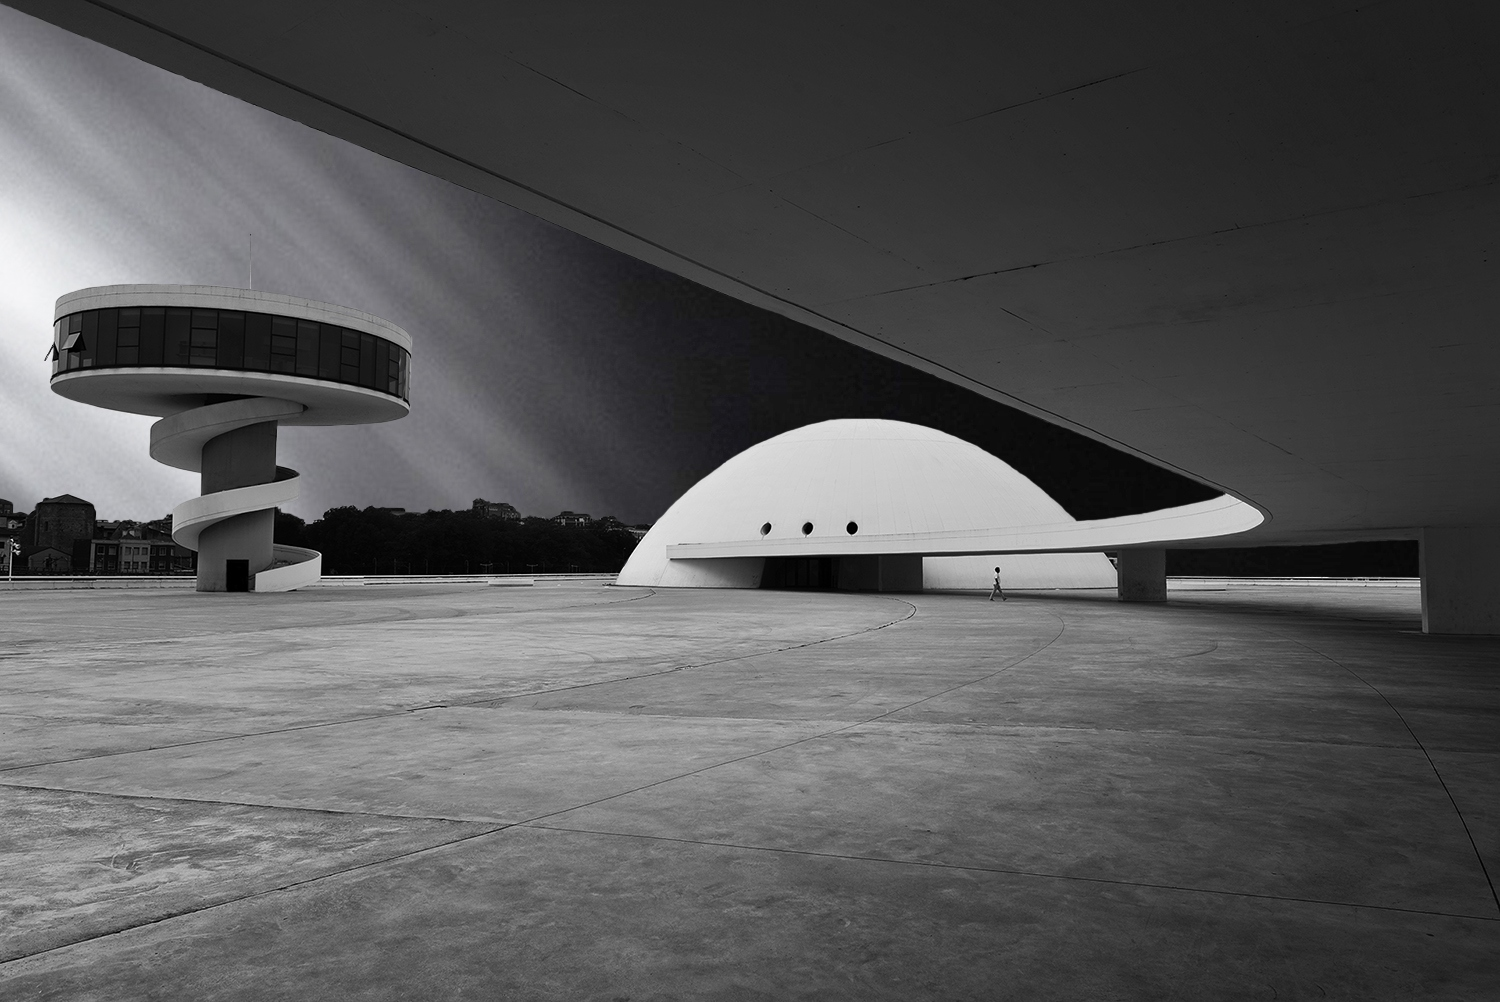 Arquitetura/Niemeyer connection